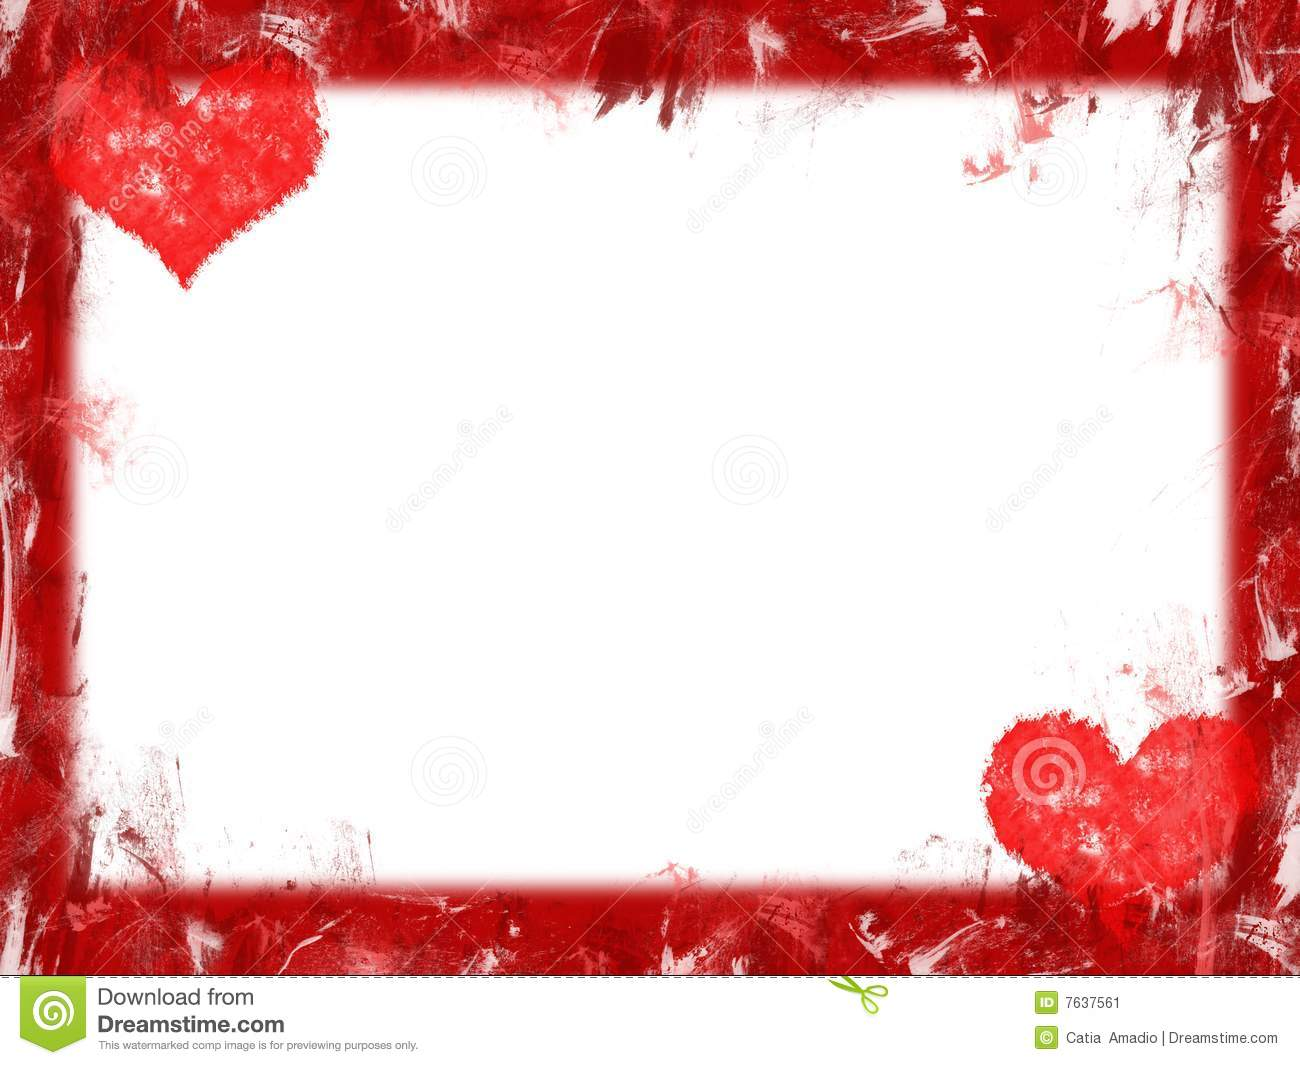 Grunge red hearts frame over white background.